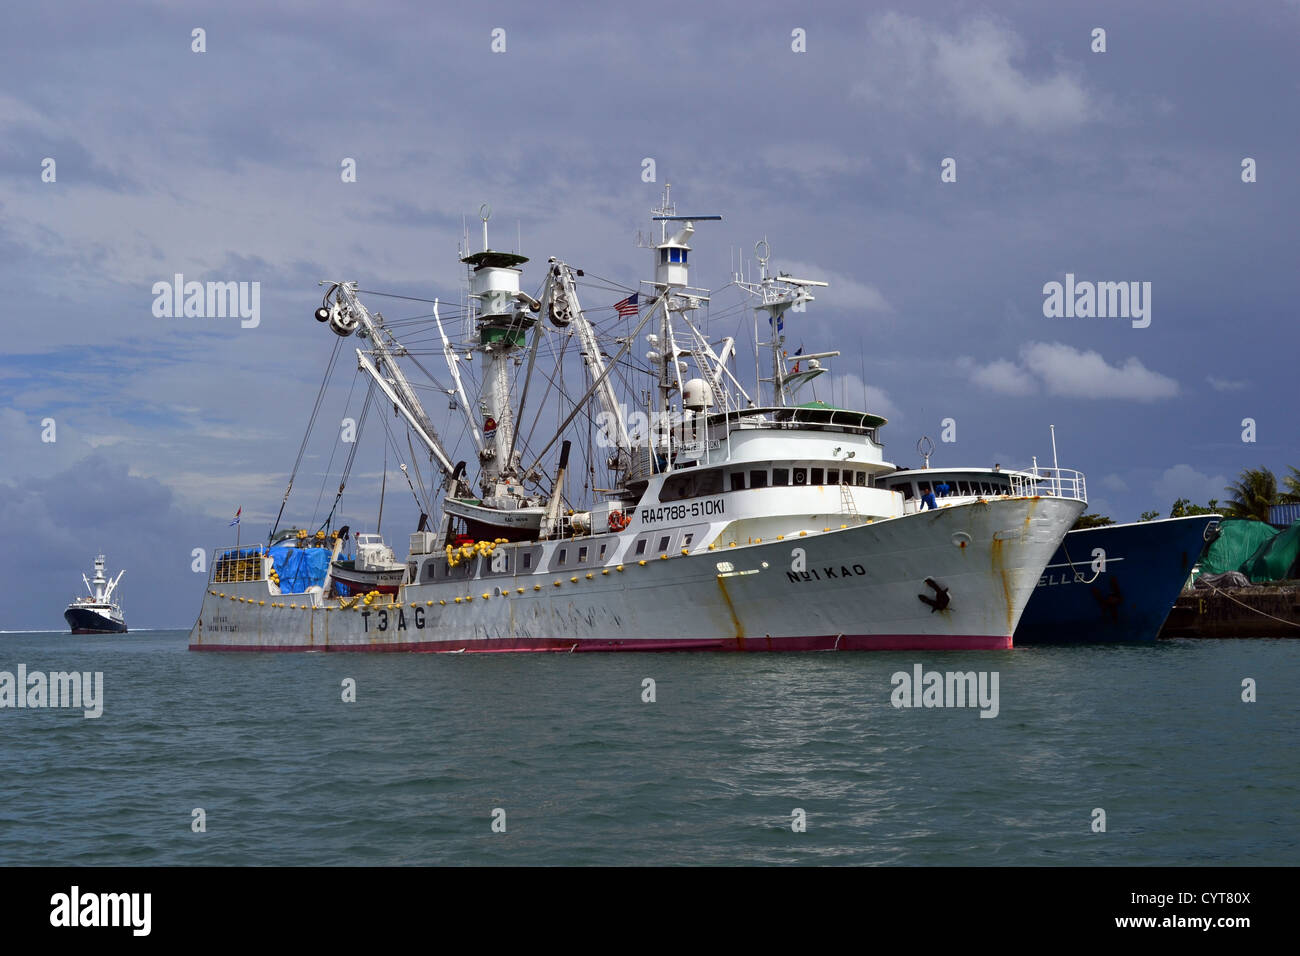 Fishing ships docked in Pohnpei, Federated States of Micronesia - Stock Image